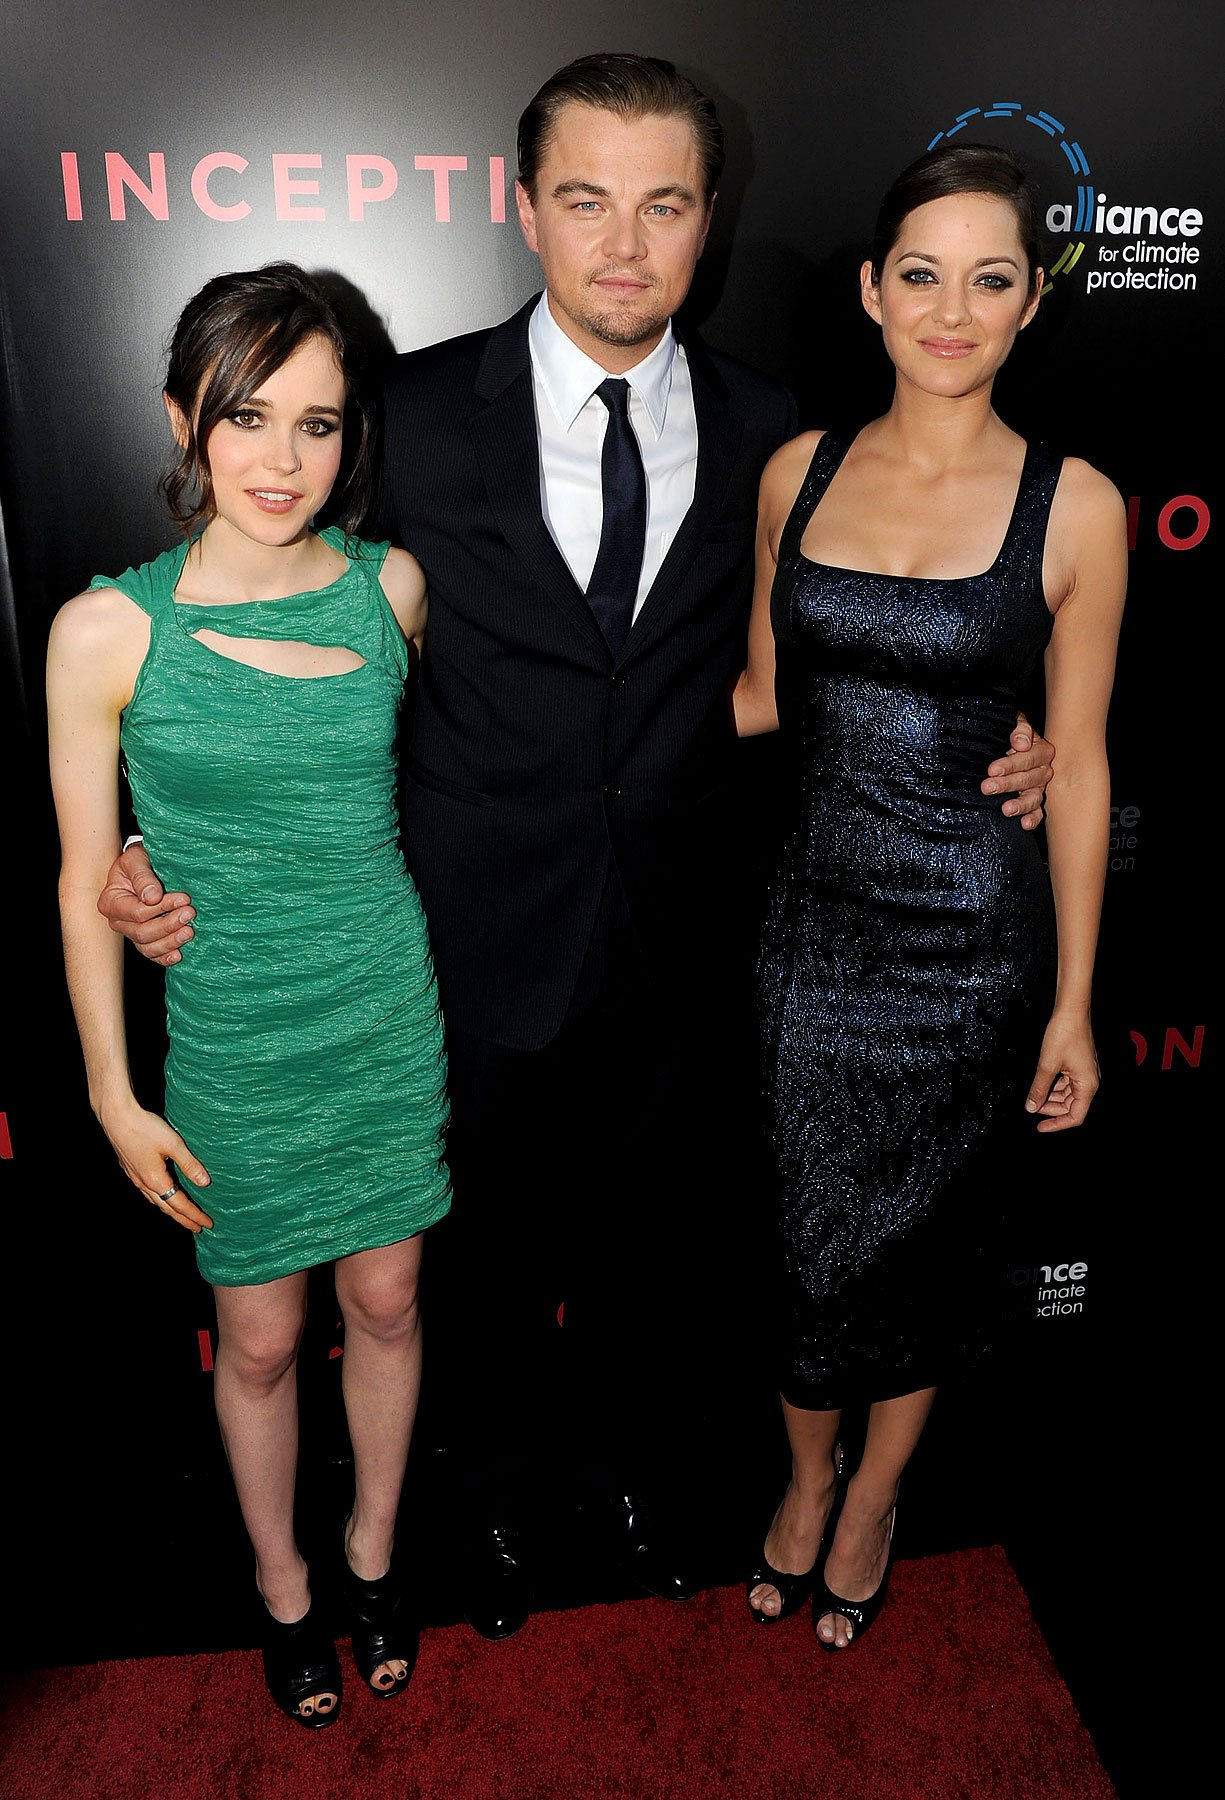 Fashion FTWs Of The 'Inception' Premiere in L.A. (PHOTOS)